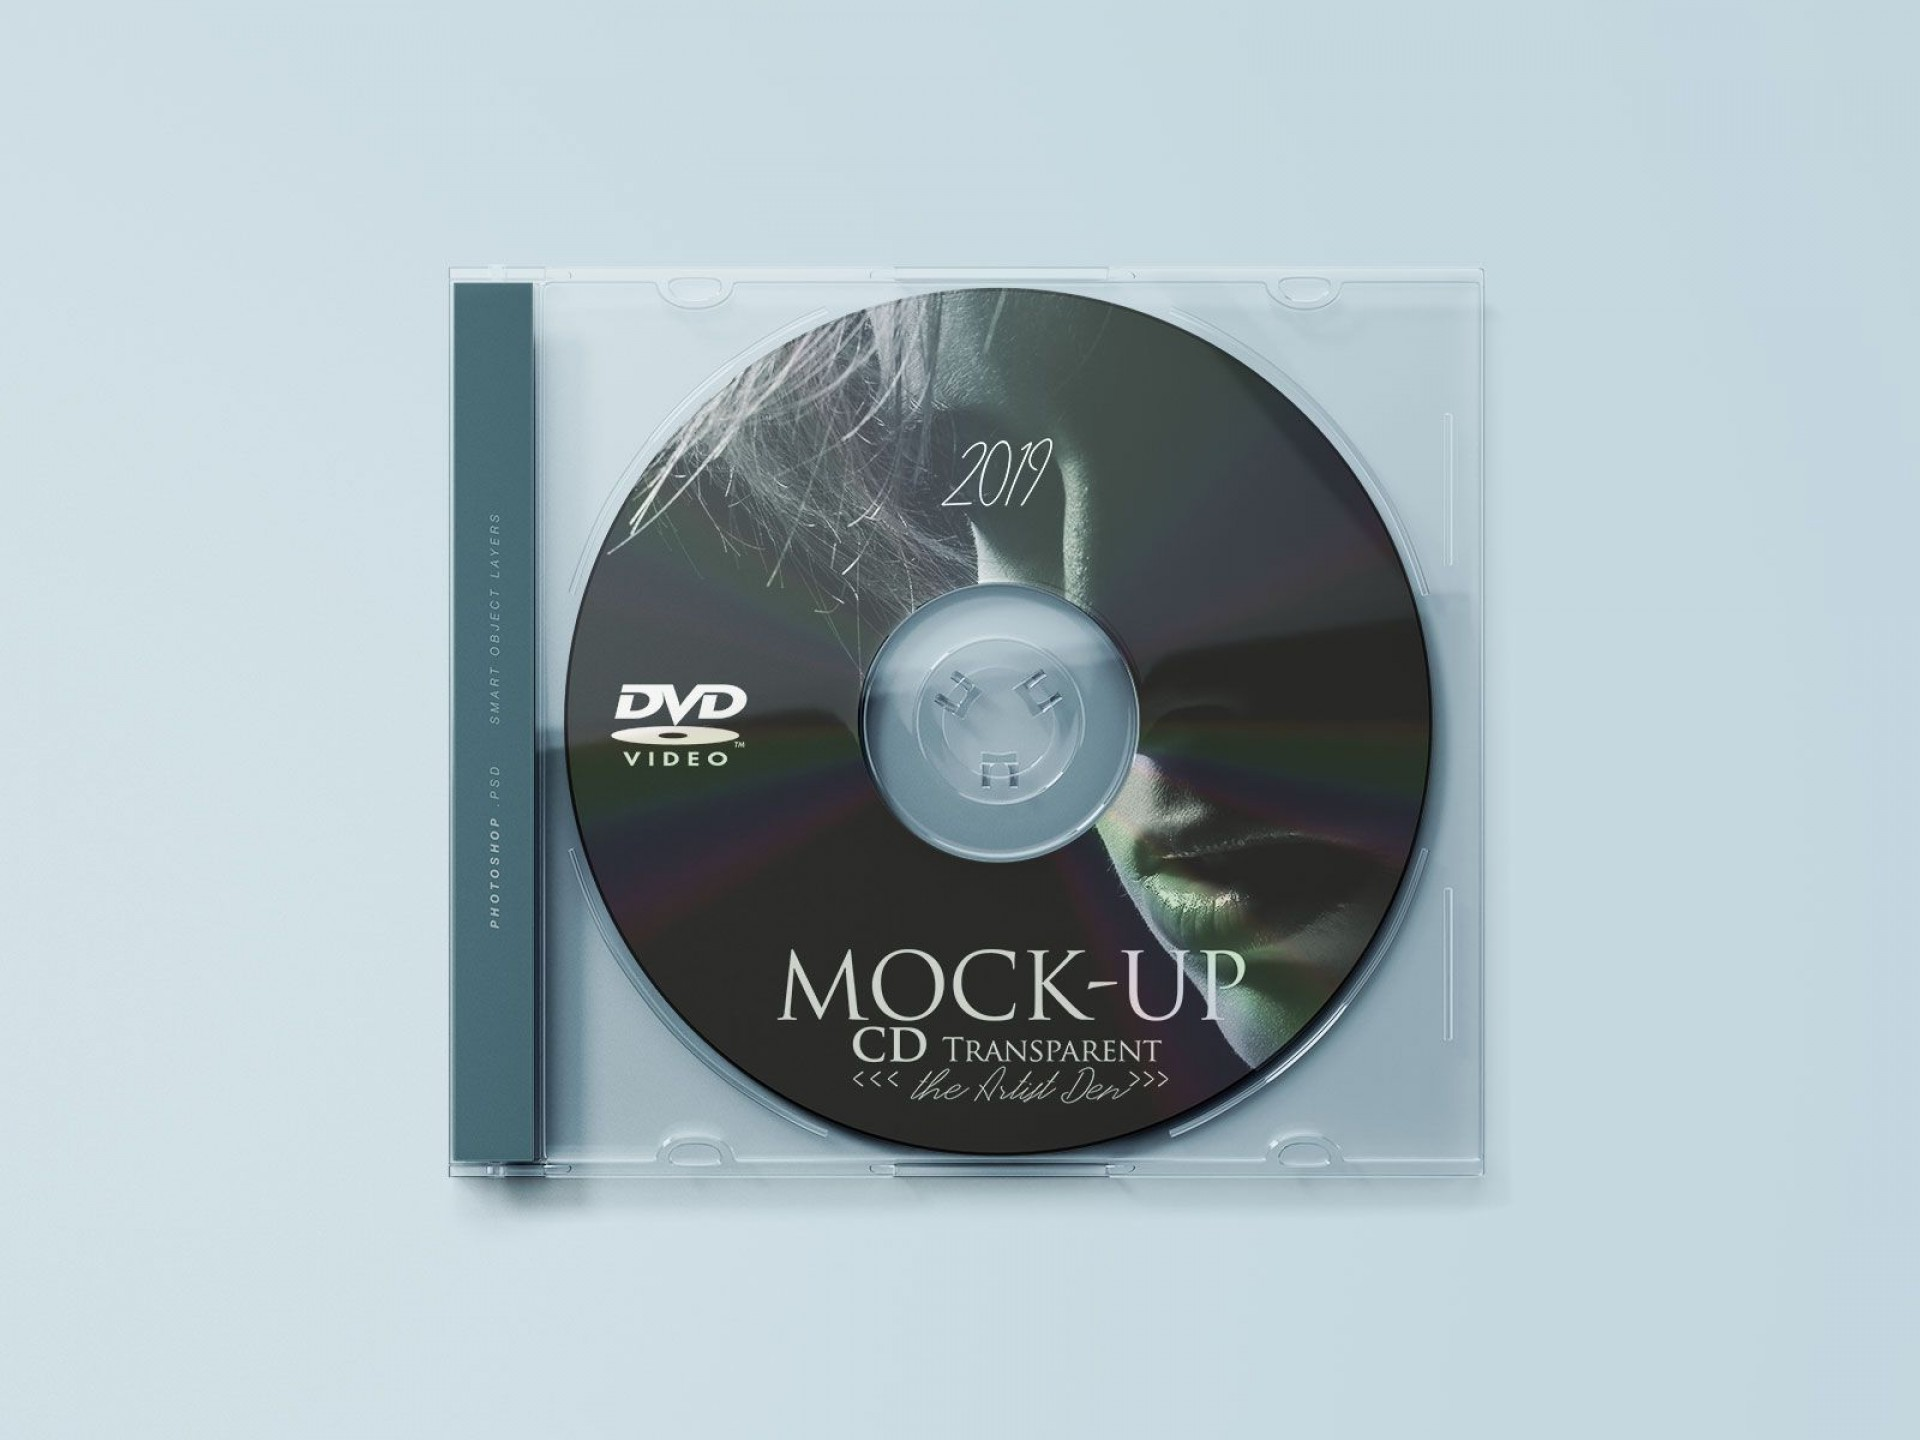 006 Surprising Free Cd Cover Design Template Photoshop High Resolution  Label Psd Download1920